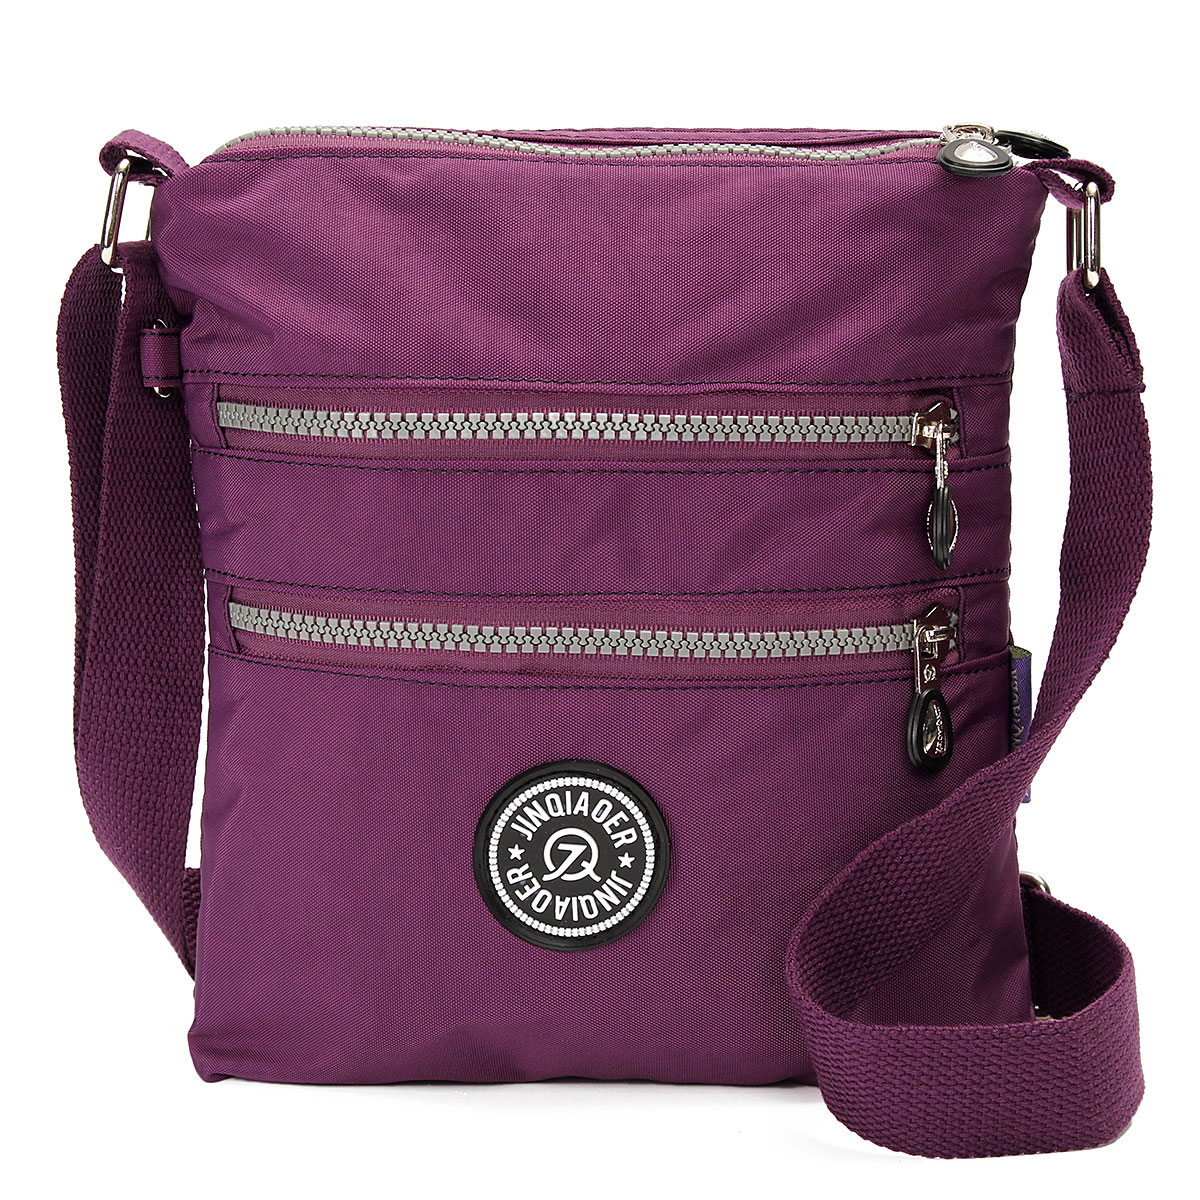 Sac à Bandoulière Portable Fan Fashion Sacs à Main Messenger , violet